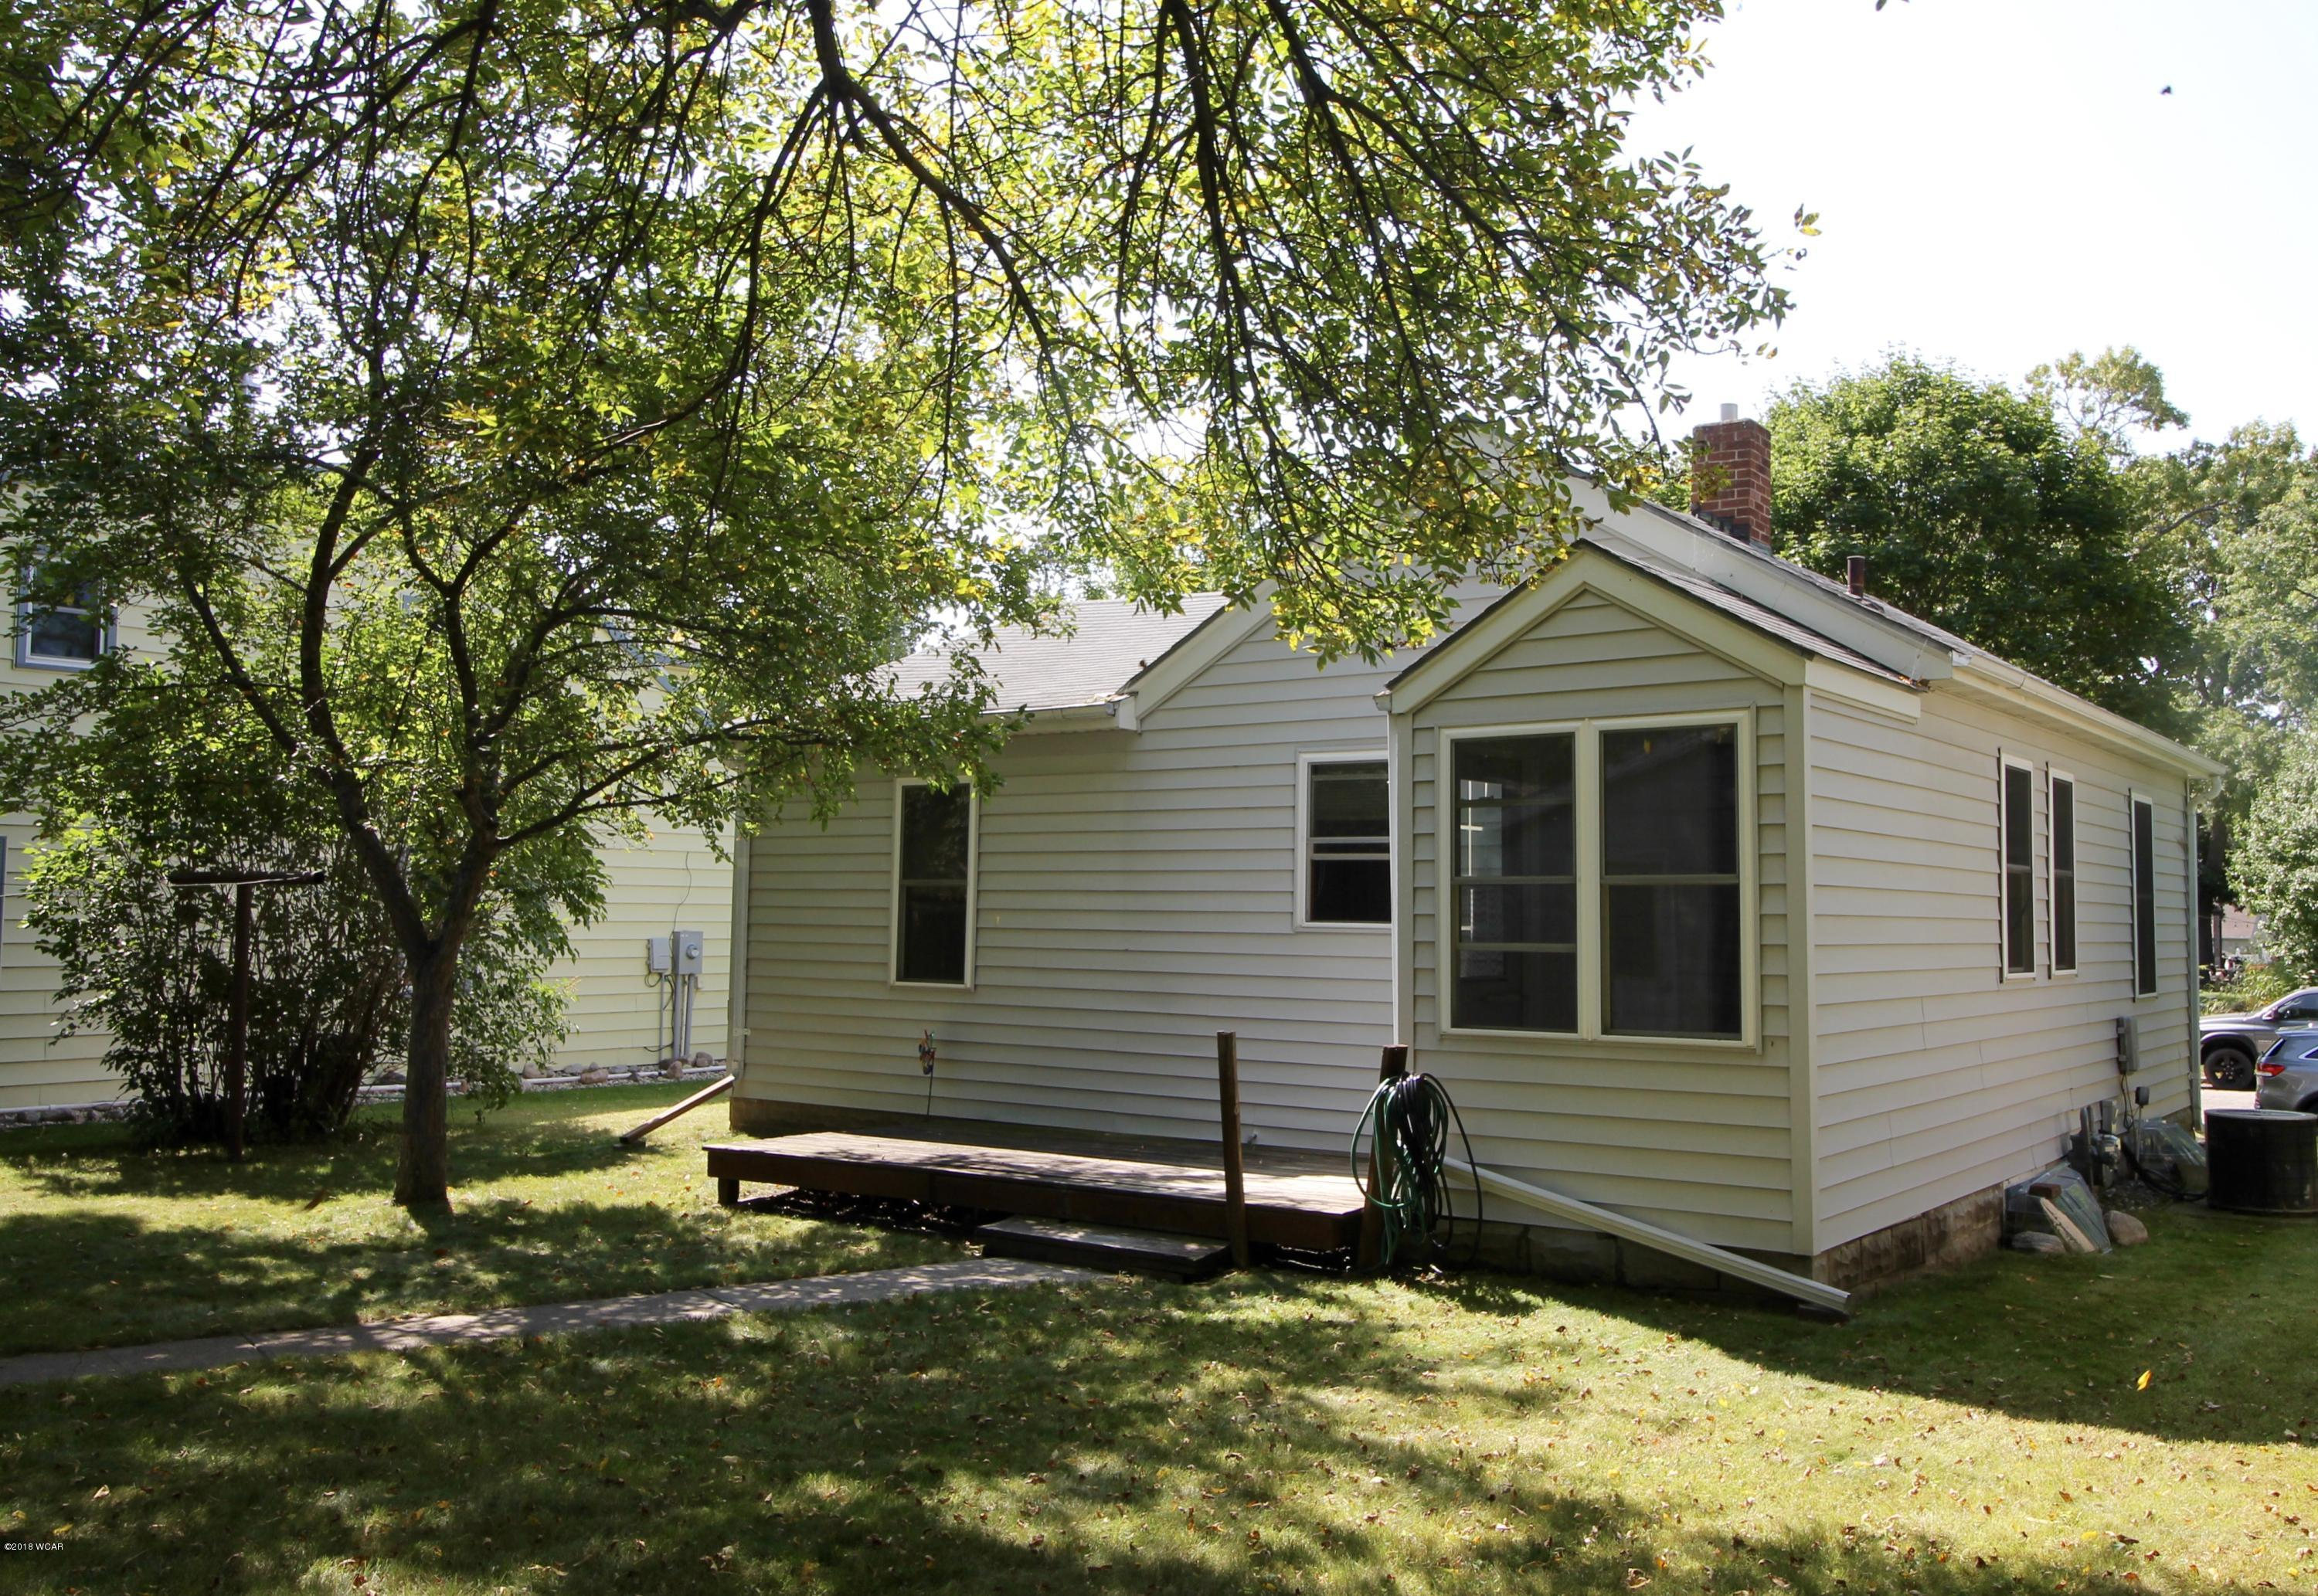 511 14th Street,Willmar,2 Bedrooms Bedrooms,1 BathroomBathrooms,Single Family,14th Street,6032237